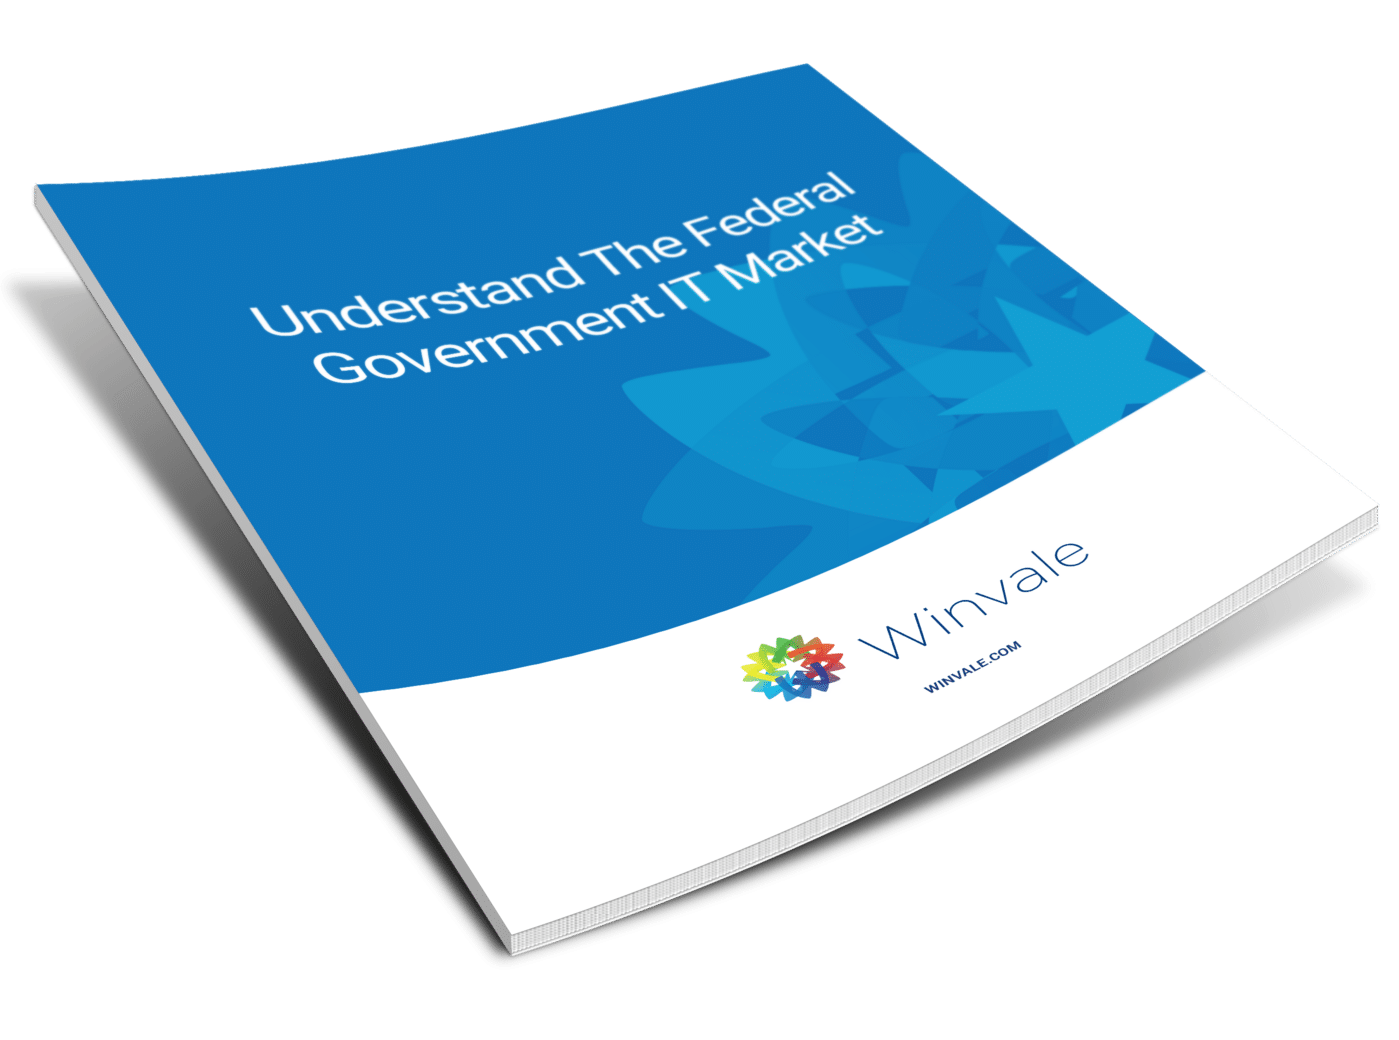 Whitepaper_Image_-_Understand_the_Federal_Government_IT_Market.png